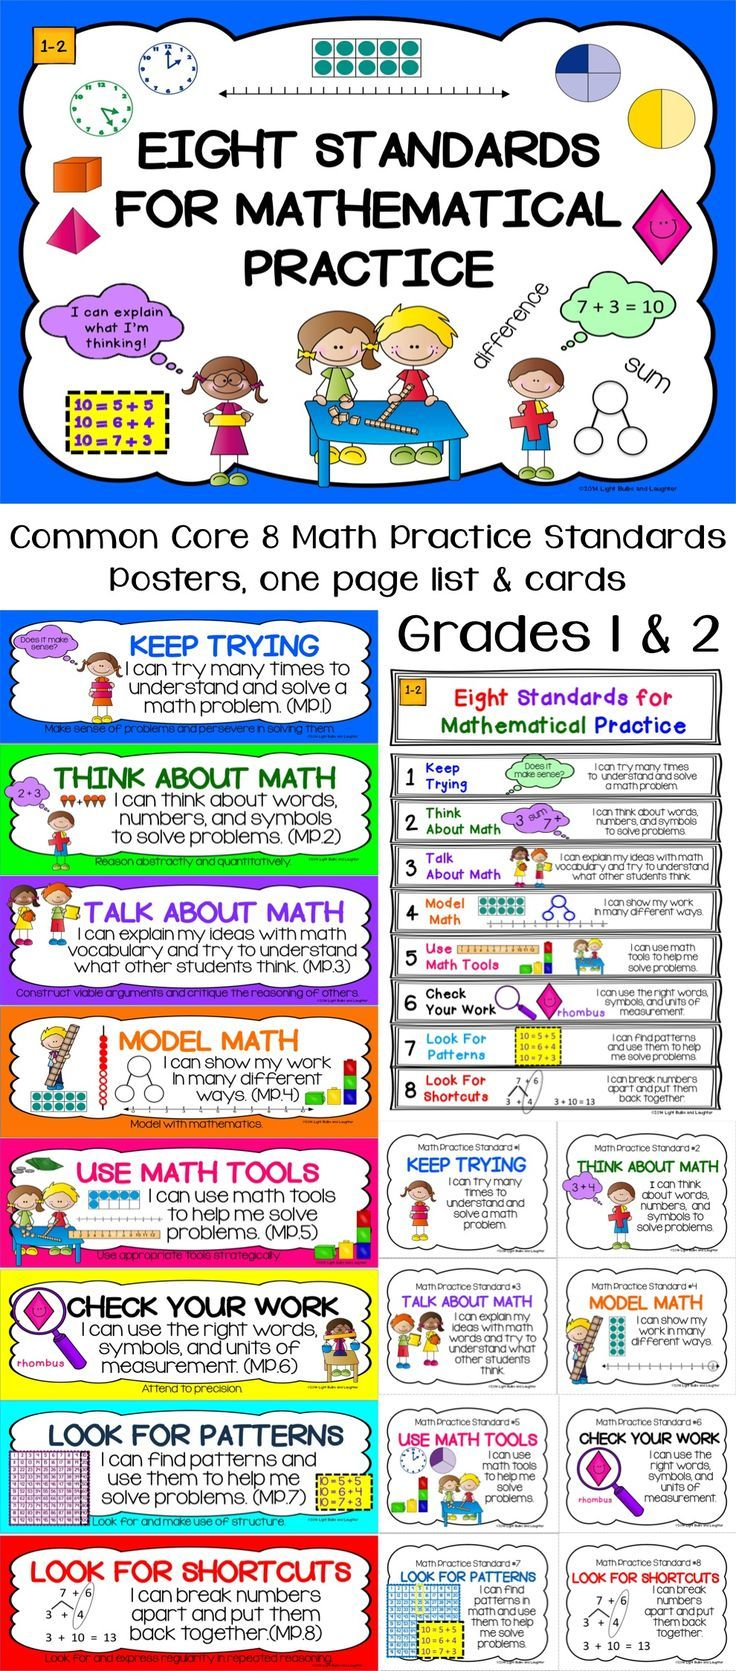 Common Core 8 Standards for Mathematical Practice - Everything you need.  Posters, one page list, student cards.  Grades 1 & 2. $TpT: